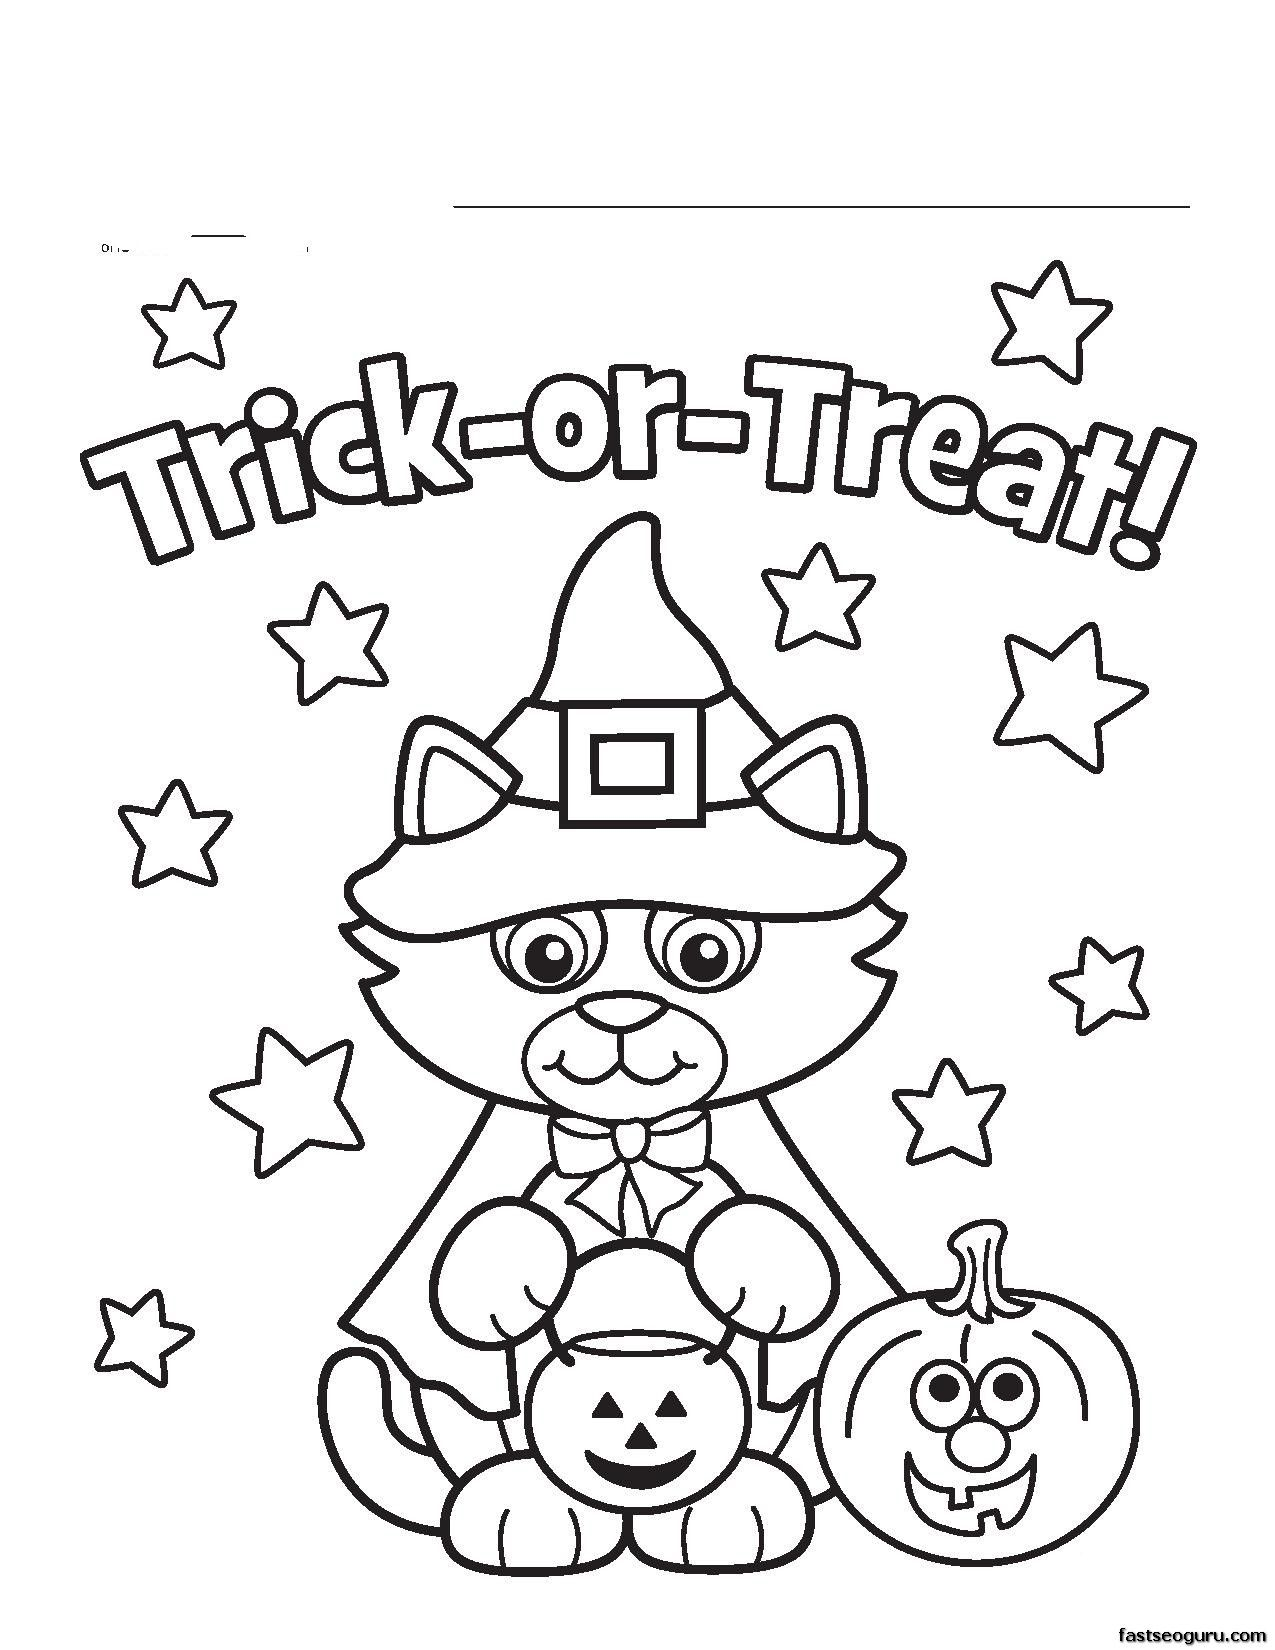 Halloween Coloring Pages Printable Free Halloween Coloring Pages To Download And Print For Free  Coloring